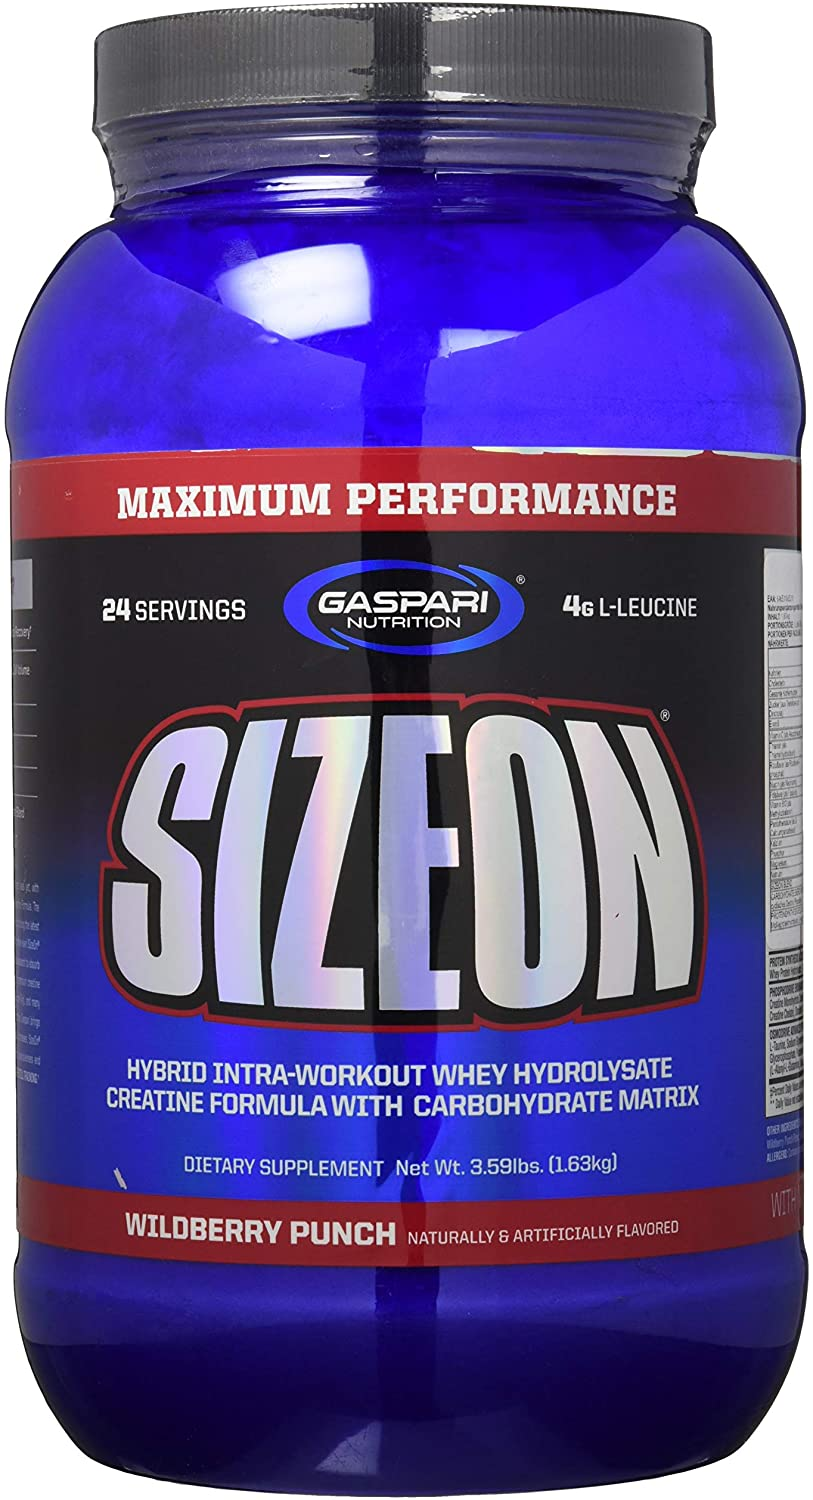 SizeOn Review: Does This Intra-Workout Build Size & Strength?